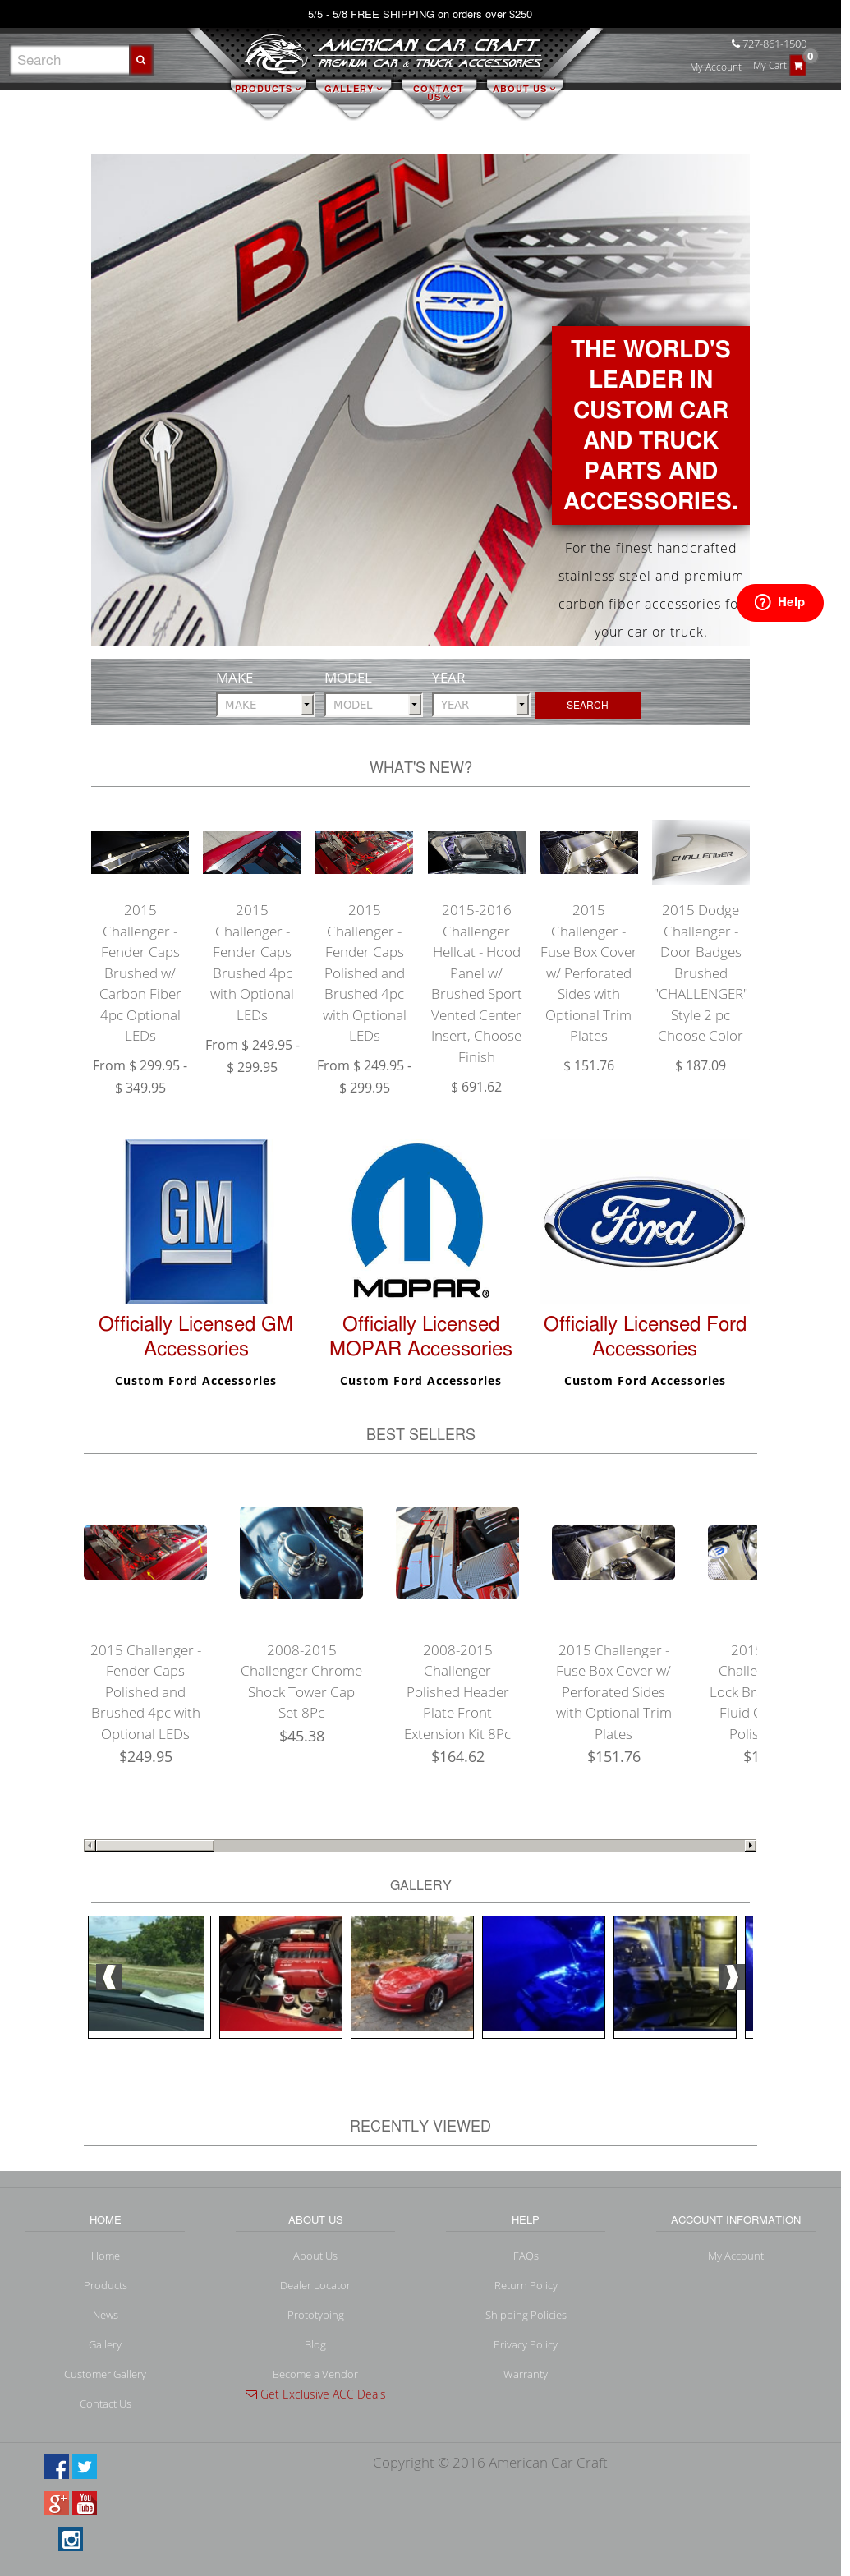 Americancarcraft Competitors Revenue And Employees Owler Company Challenger Fuse Box Profile